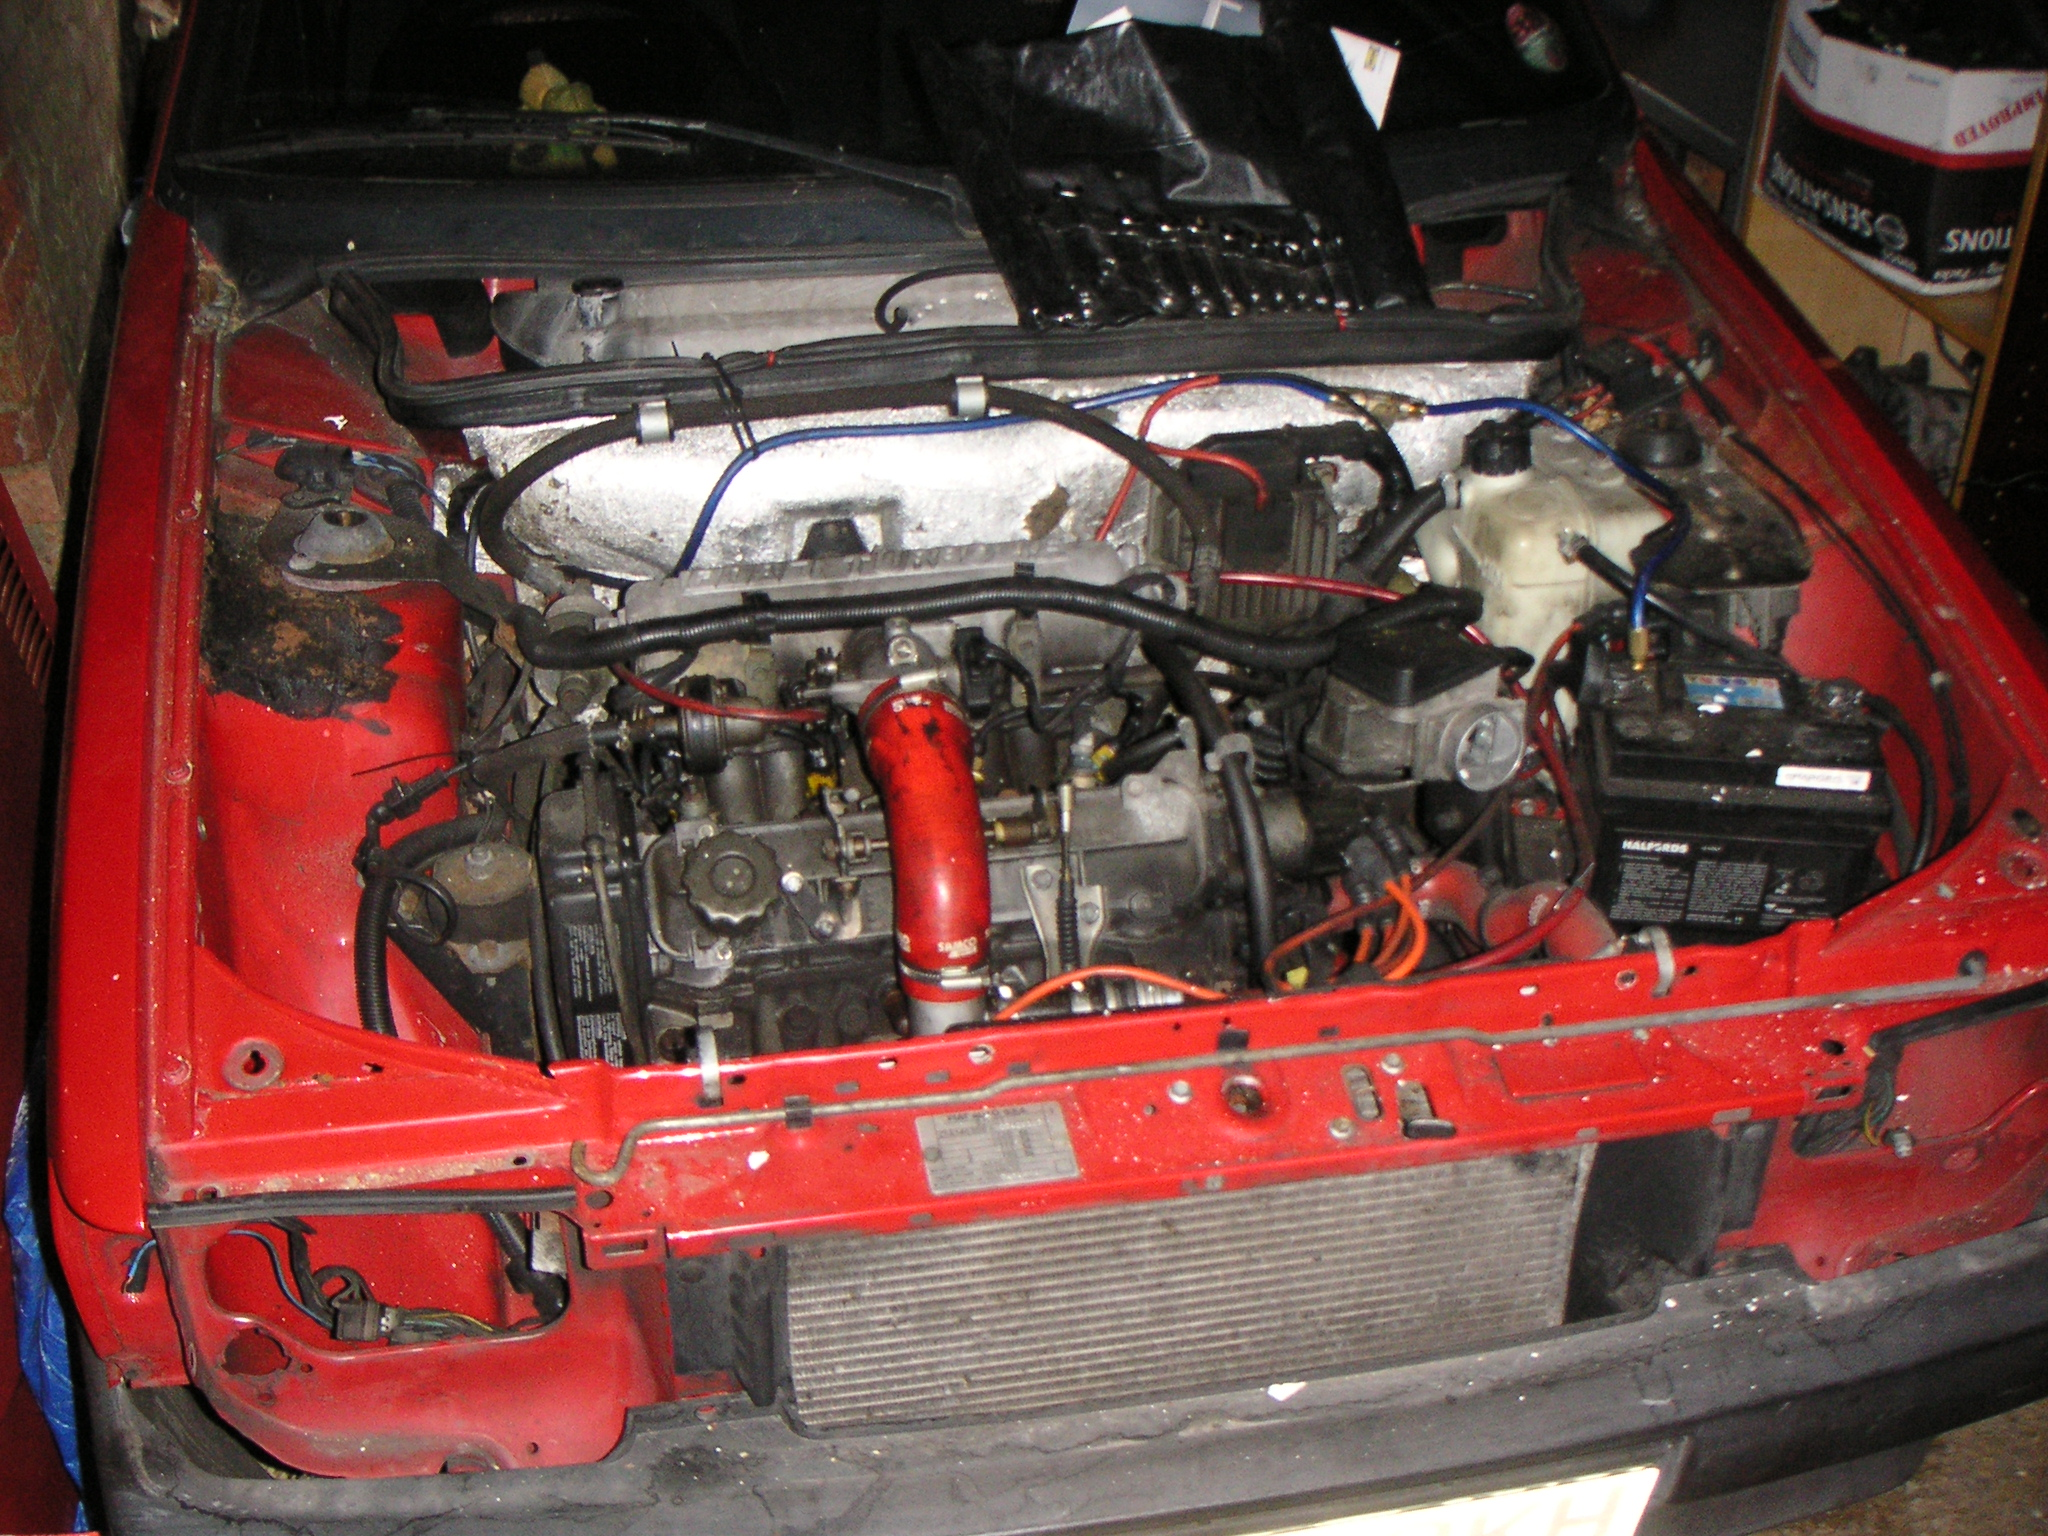 General How To Identify Fiat Uno Engine The Fiat Forum